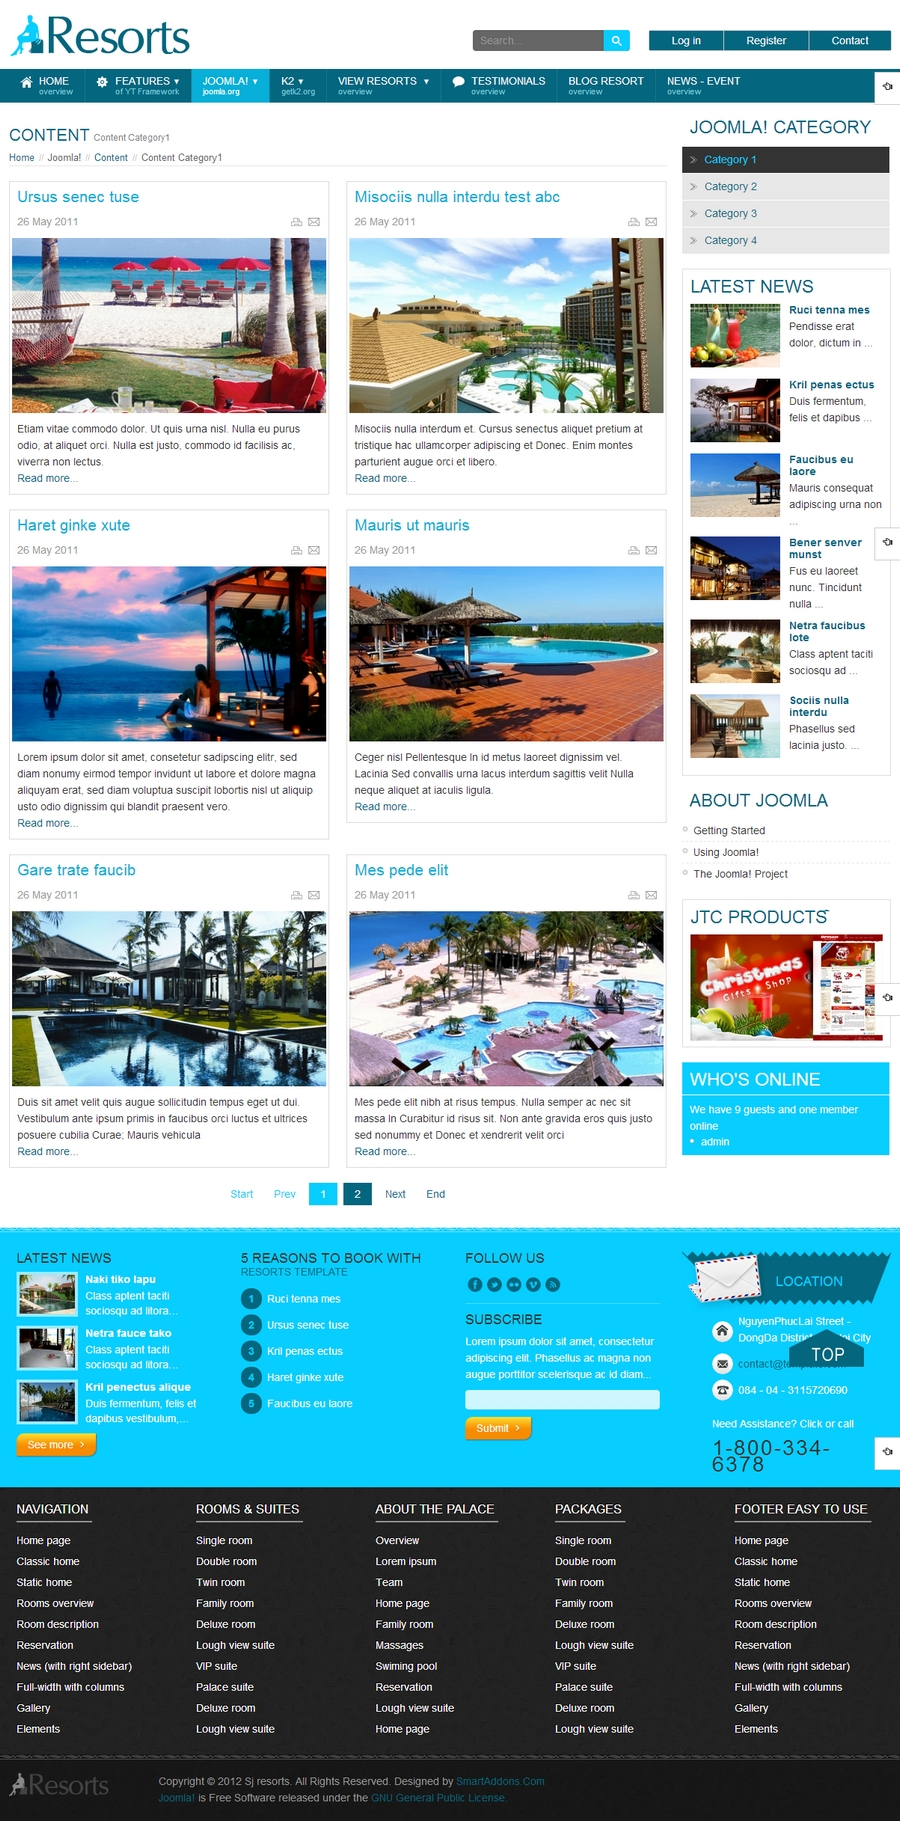 SJ Resorts - Responsive Joomla Resorts & spa Template - 02blog.jpg